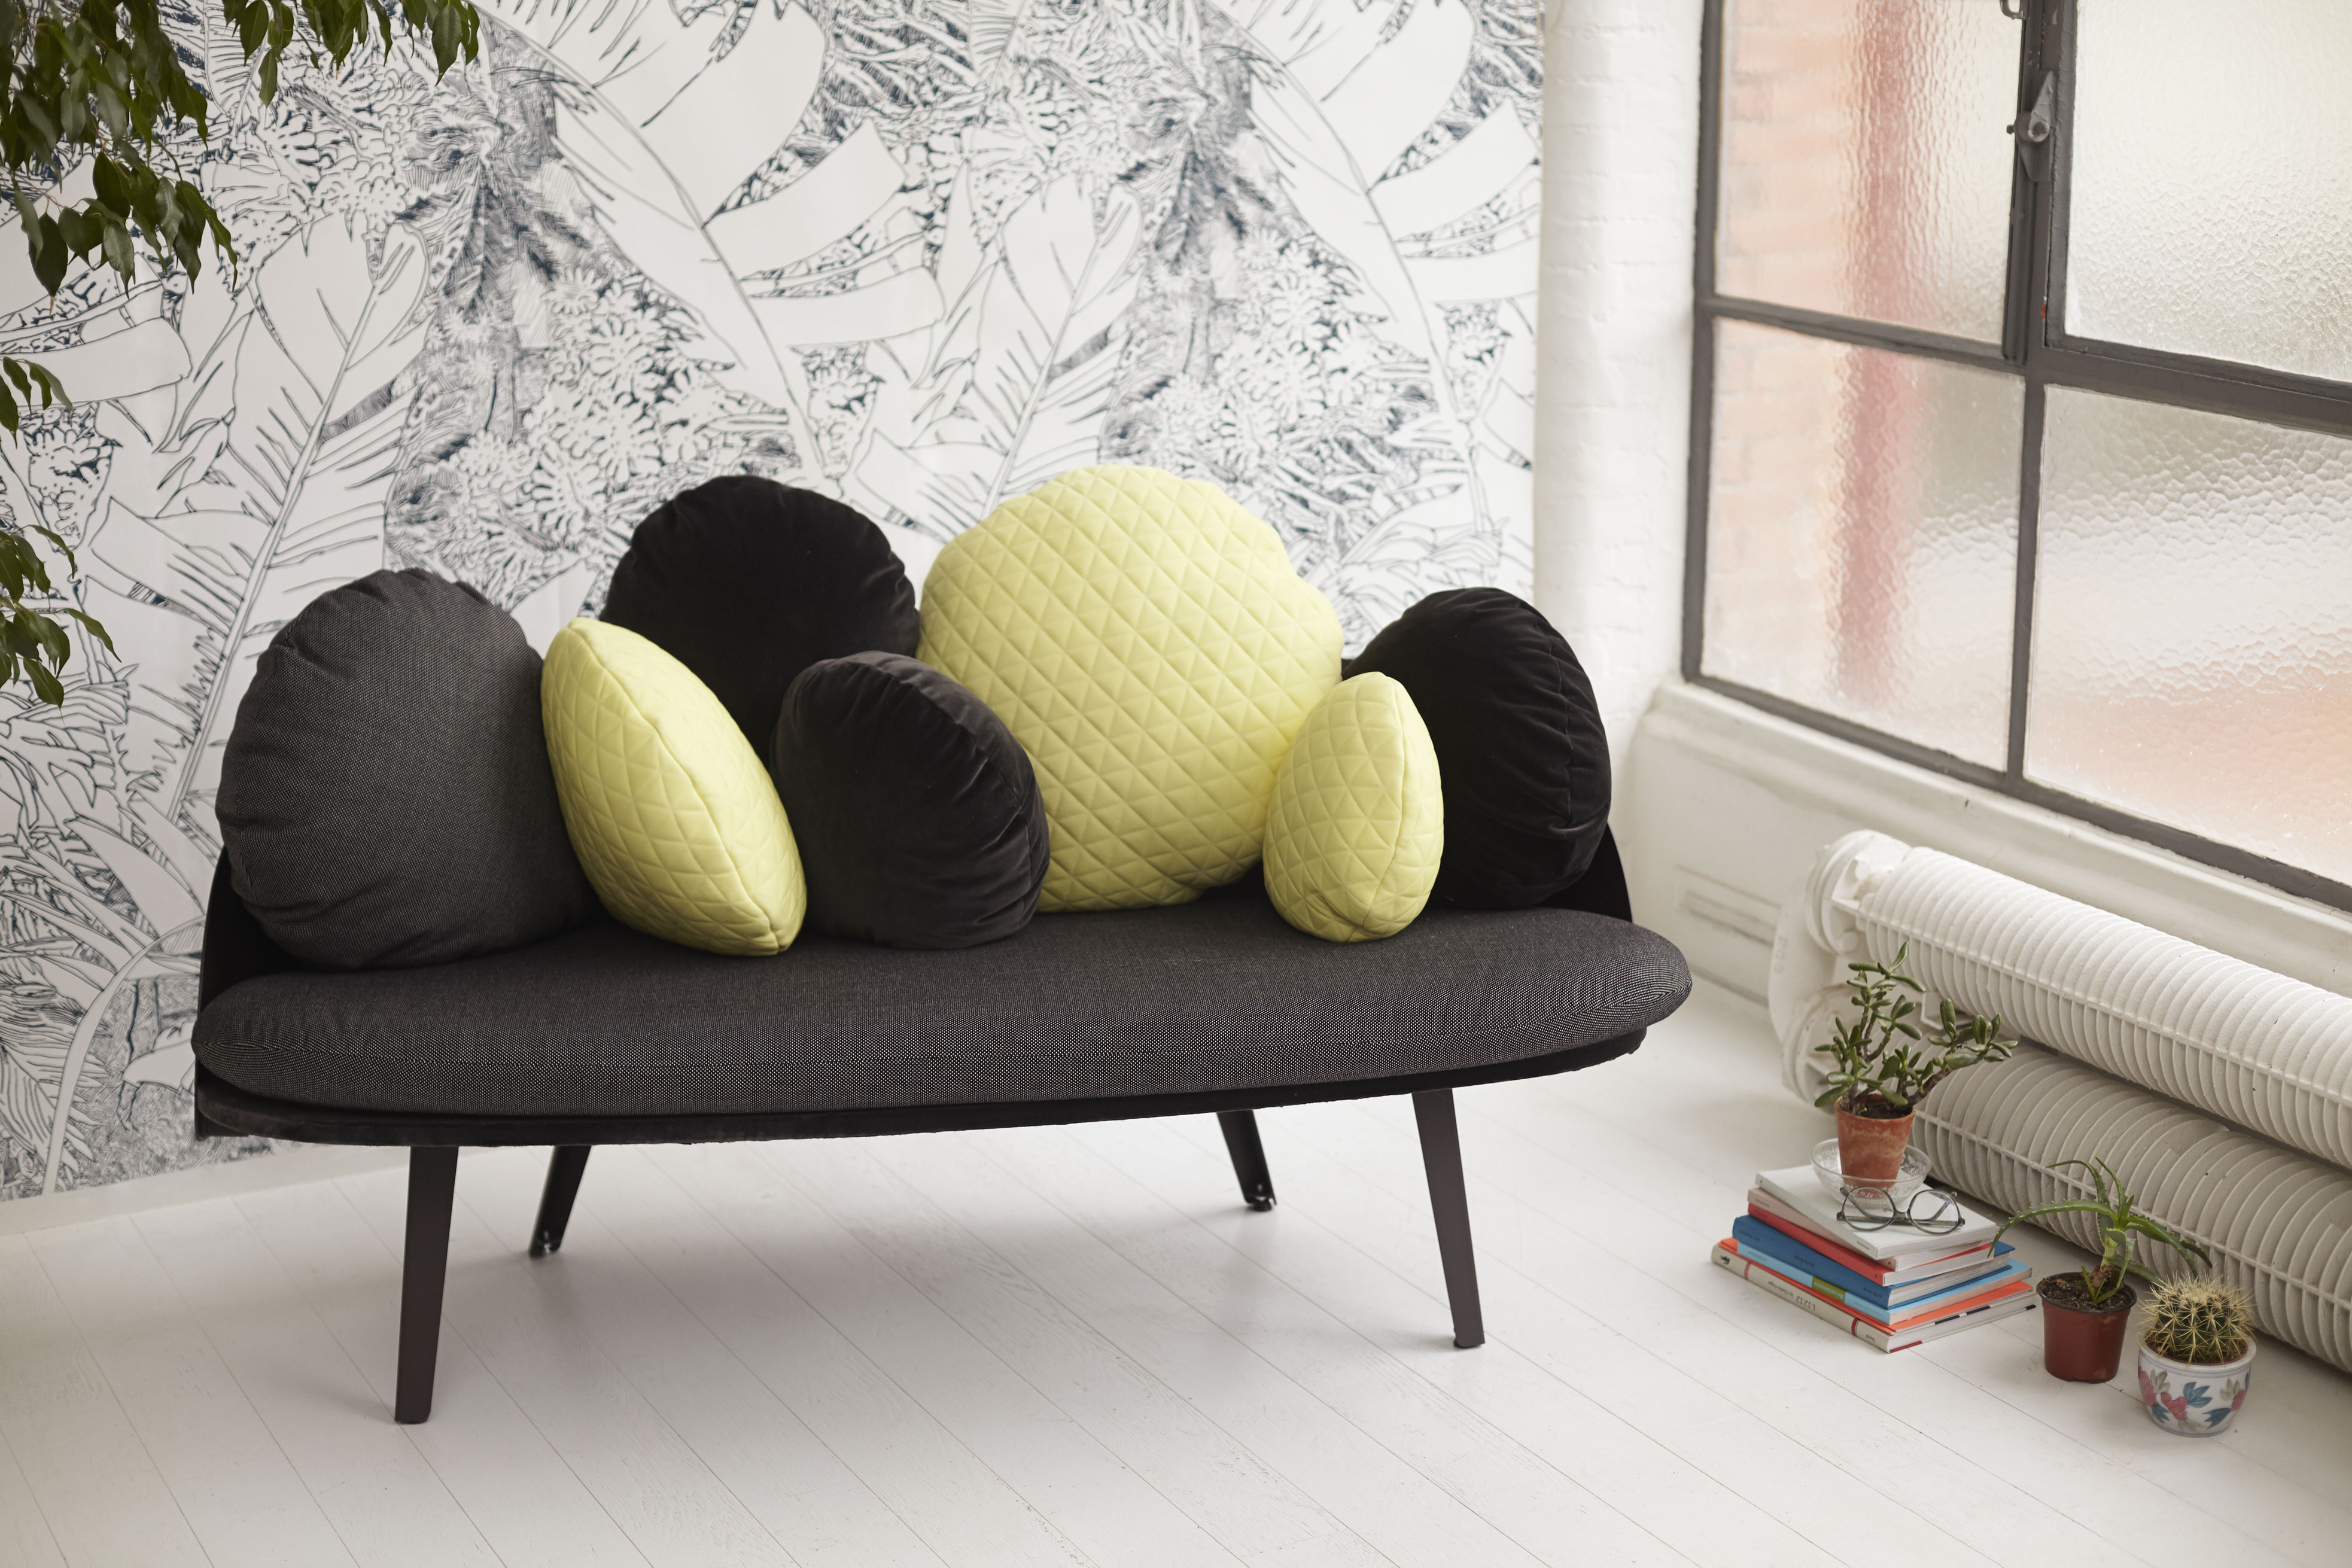 papier peint jungle 2 1 rouleau larg 48 cm noir fond blanc petite friture. Black Bedroom Furniture Sets. Home Design Ideas